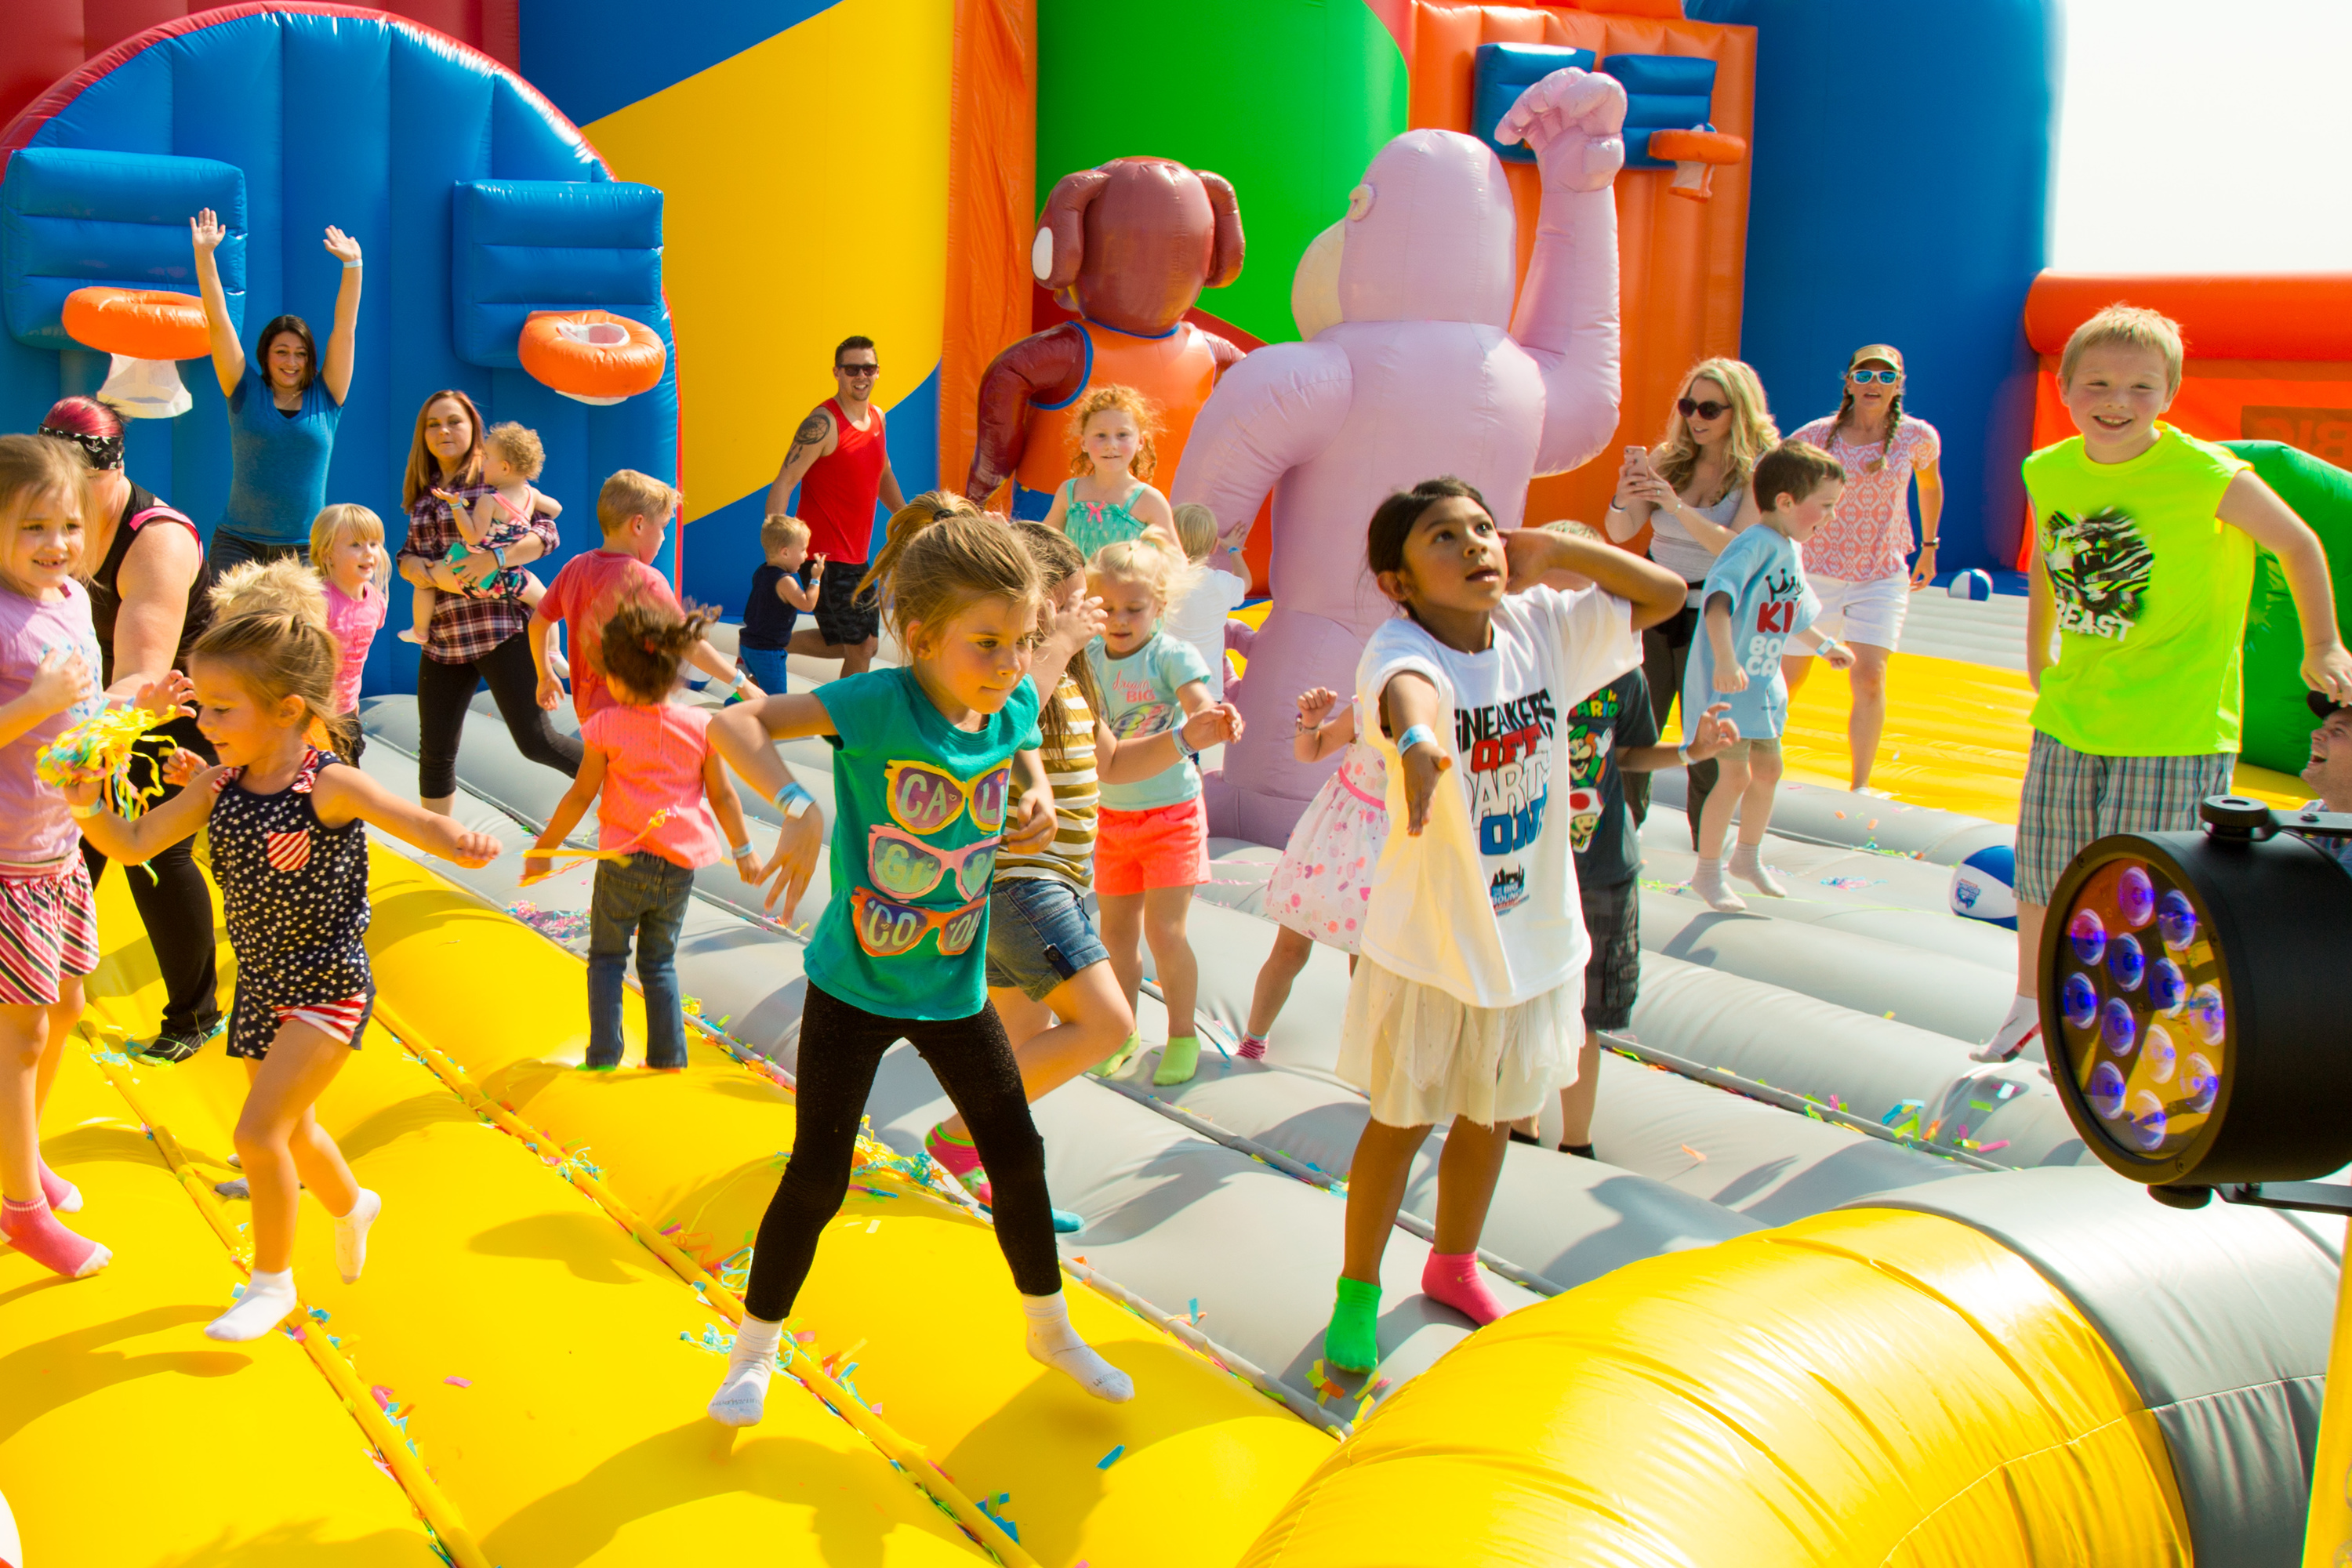 World's largest bounce house is NYC-bound